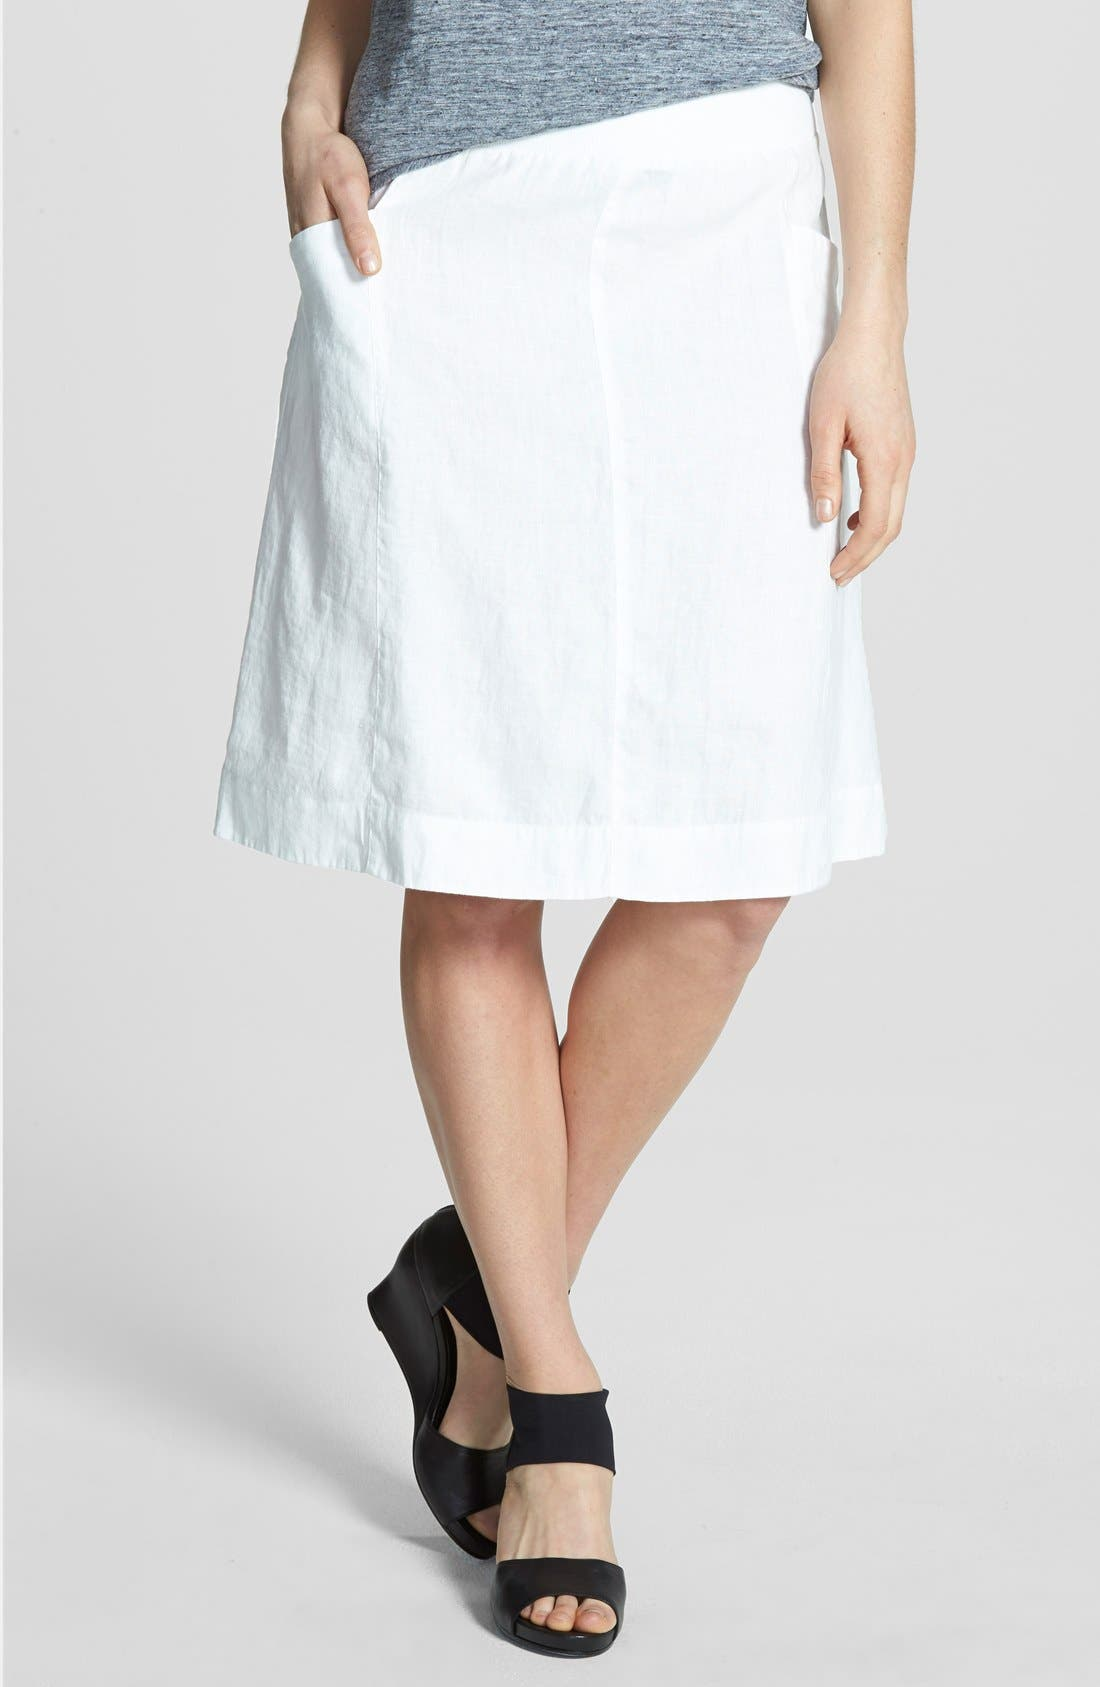 Eileen Fisher Organic Linen Knee Length Skirt (Regular & Petite) (Online Only)